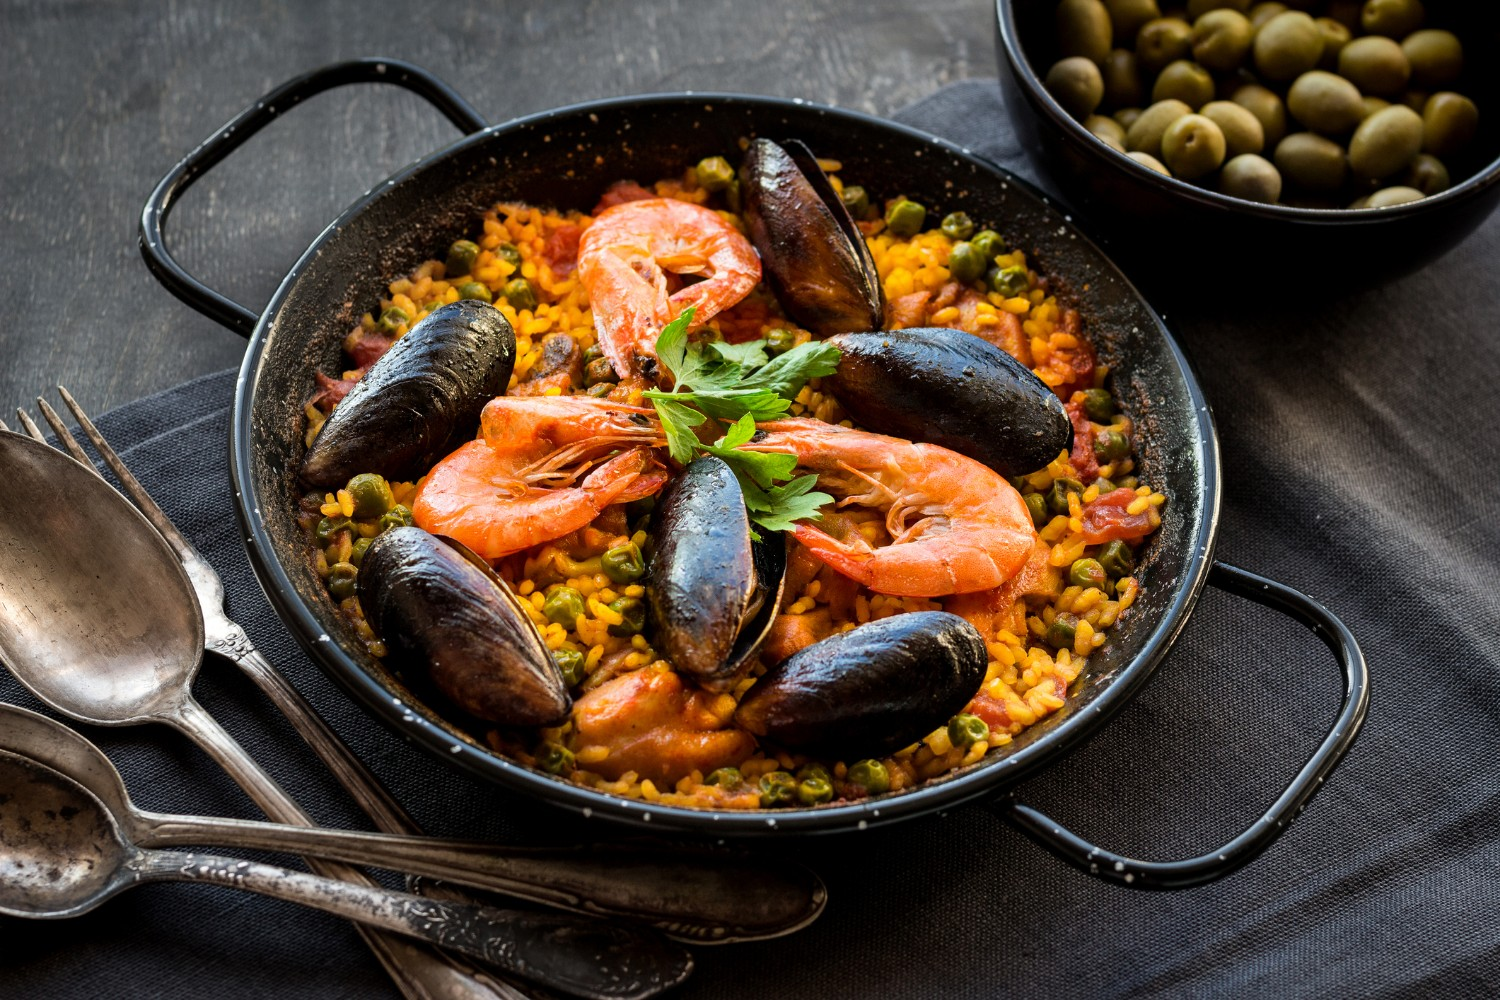 Paella in black pan with rice, shrimps, mussels, squid and meat, bowl with olives and vintage cutlery. Seafood paella, traditional spanish dish. Paella on rustic black wooden table. Selective focus (Paella in black pan with rice, shrimps, mussels, squ